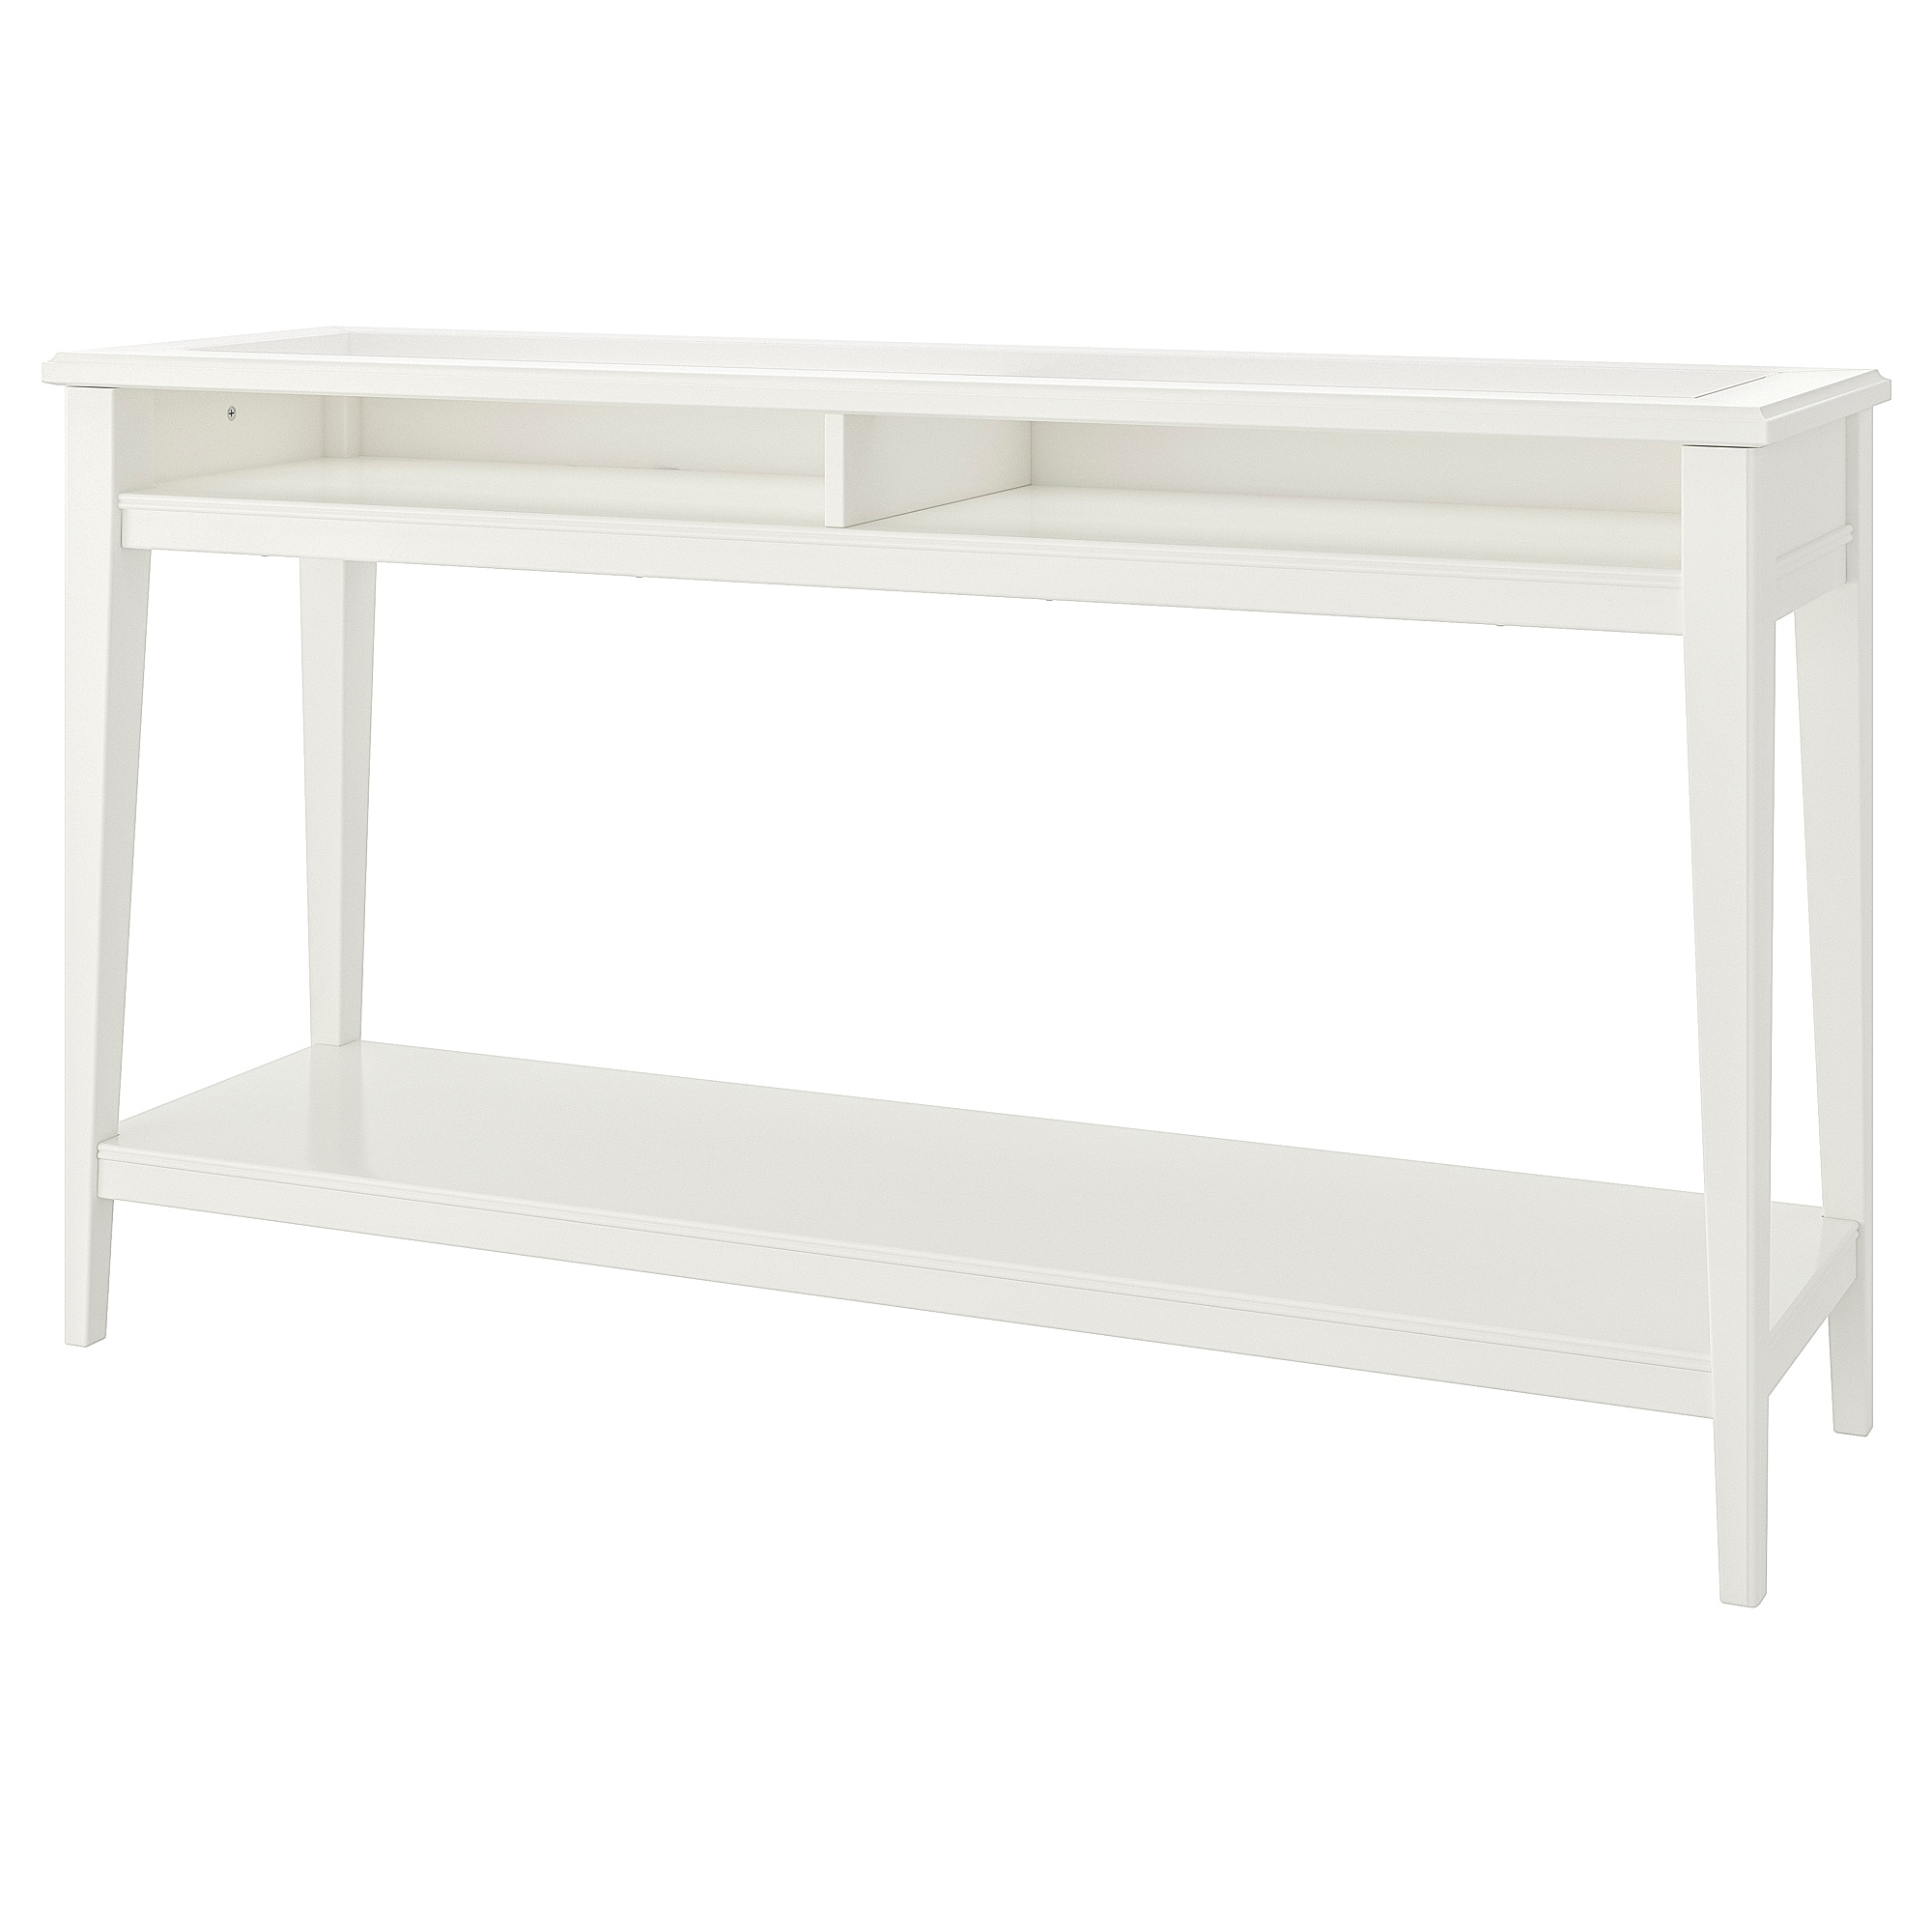 Astounding Liatorp Console Table White Glass Download Free Architecture Designs Estepponolmadebymaigaardcom